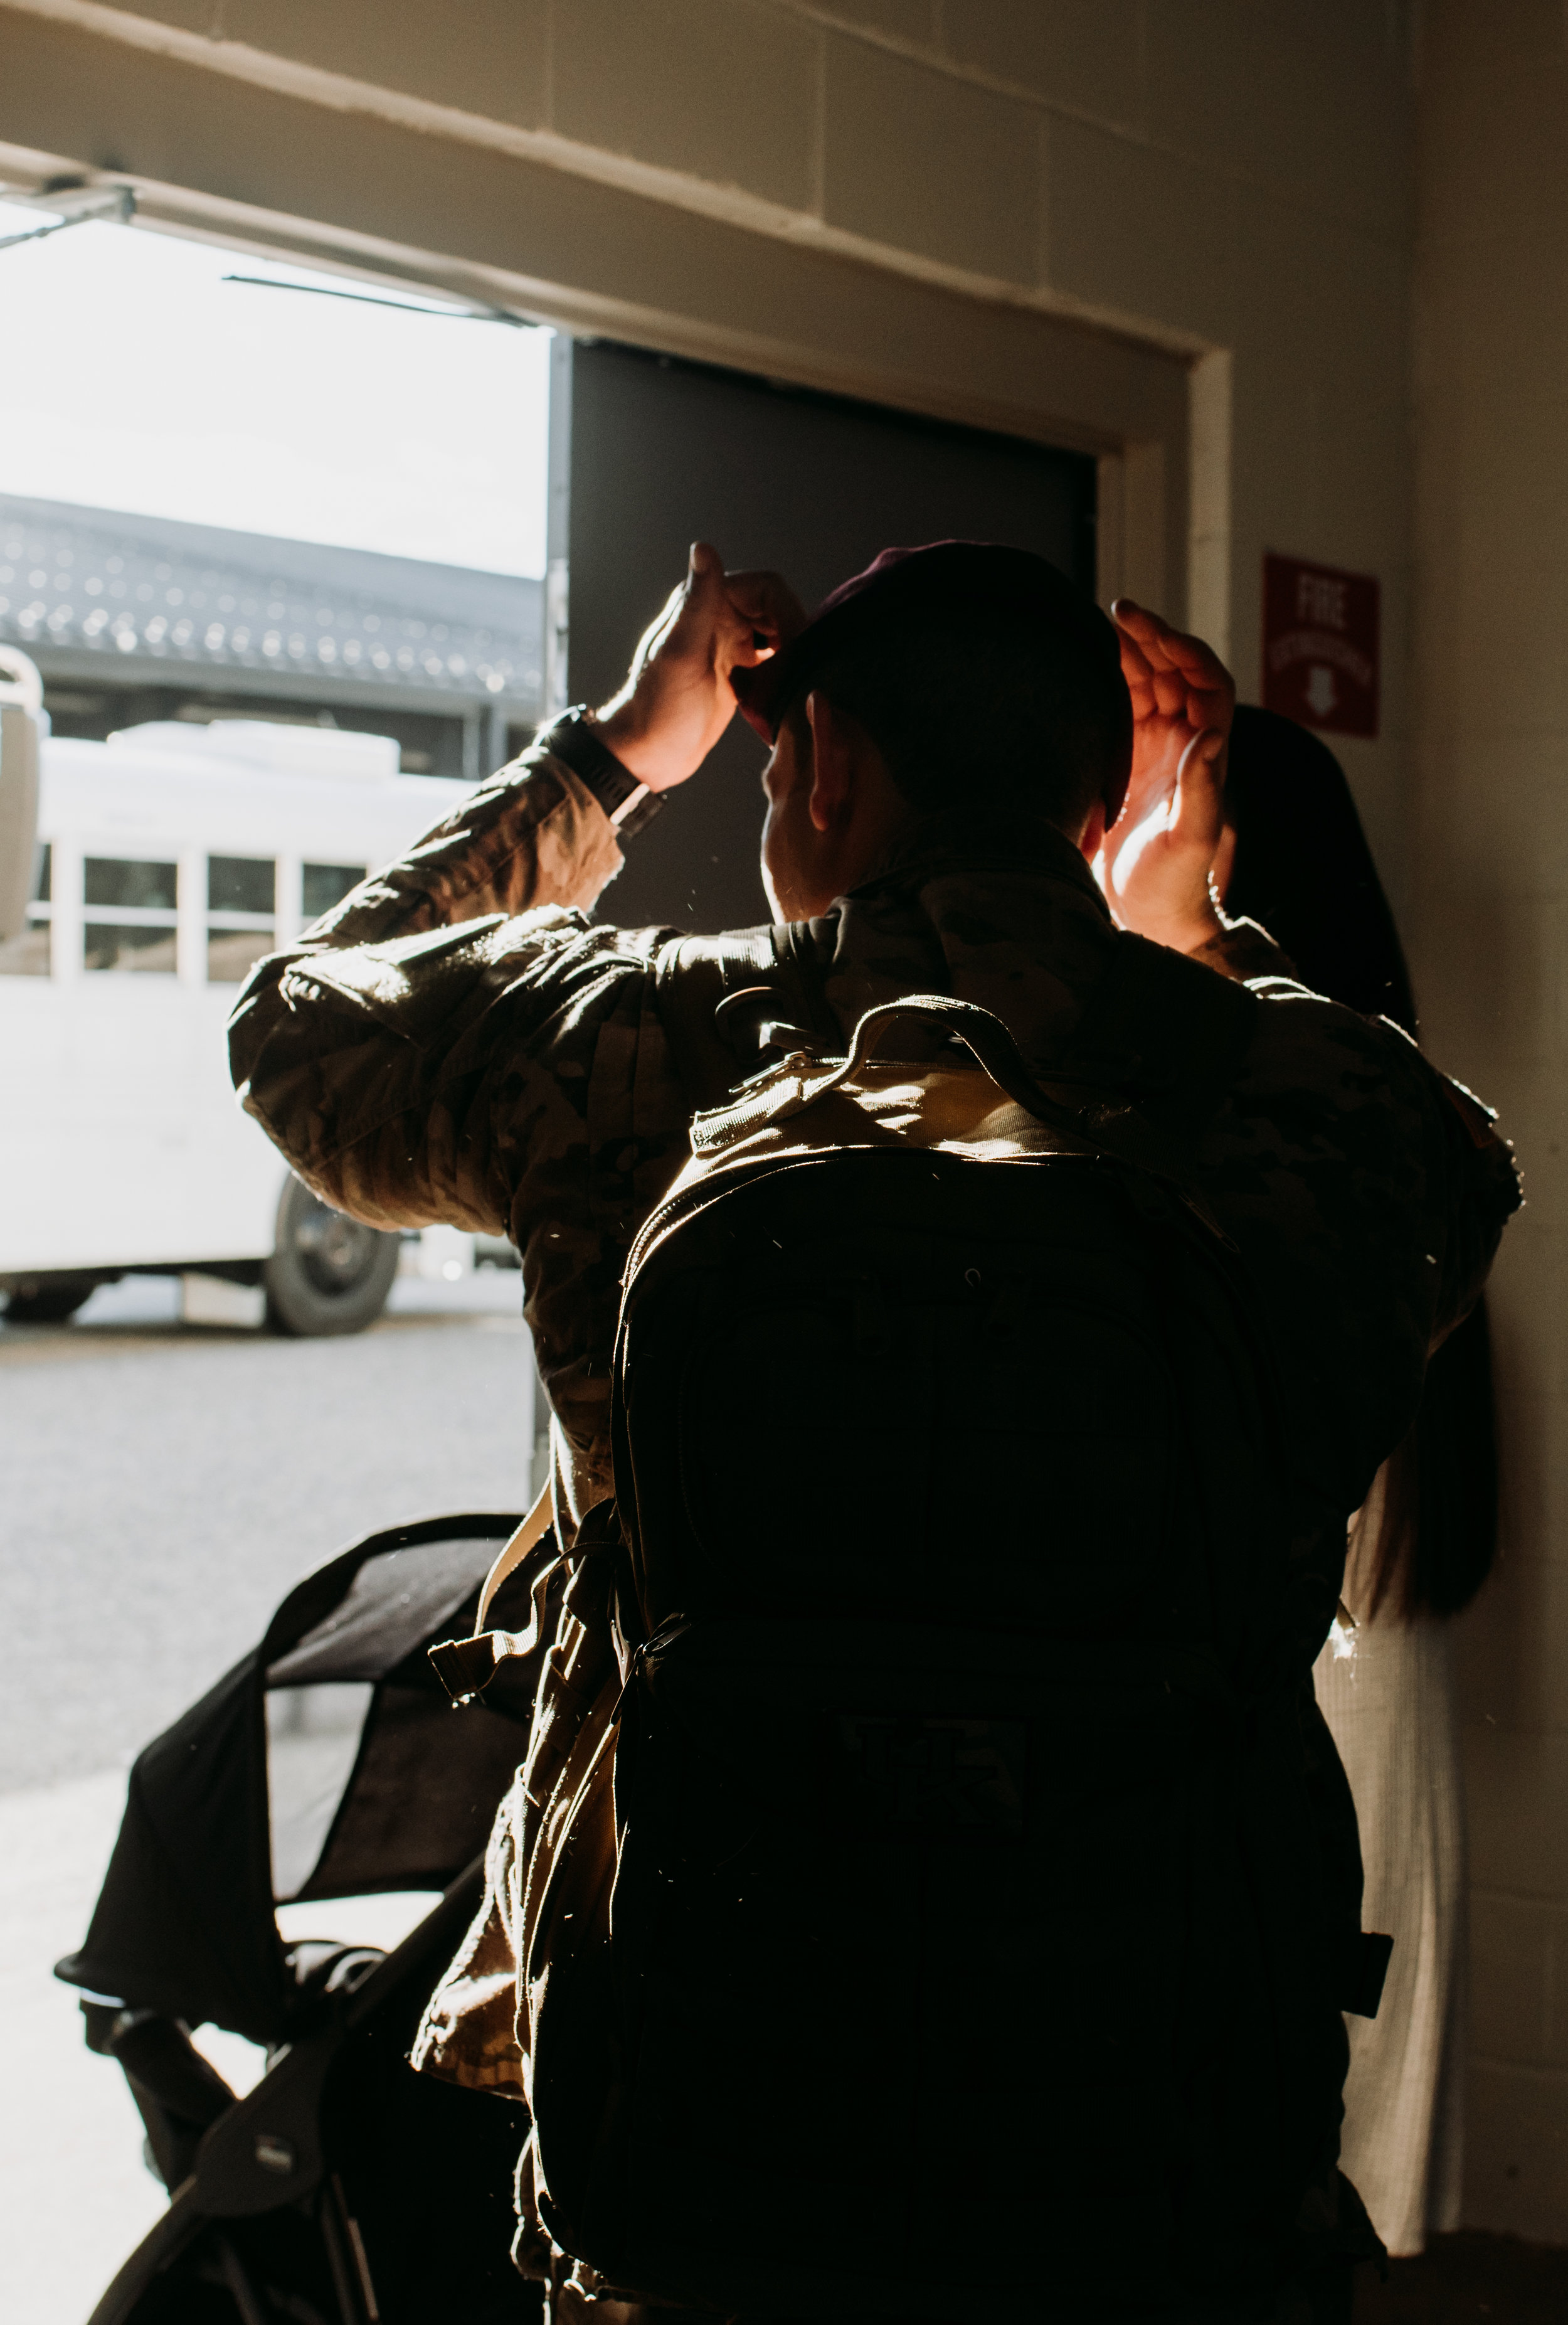 Pausing at the door to put on his beret, Tyler is headed to the unit to drop off sensitive items, then home.